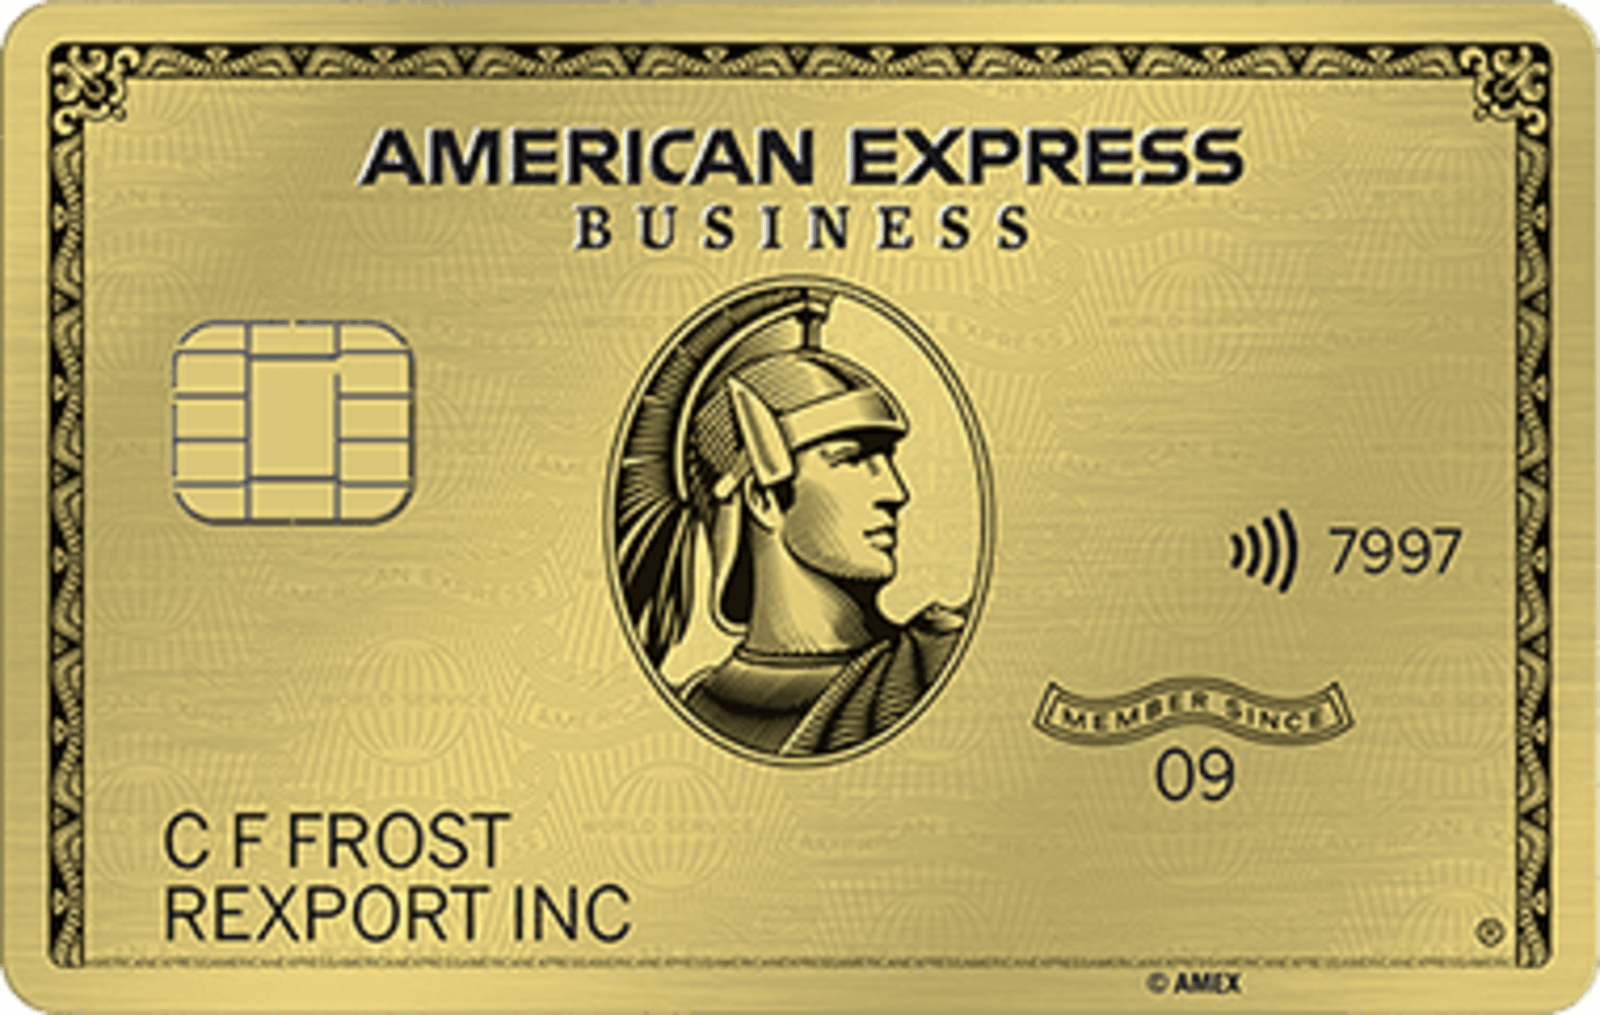 Amex Business Gold Rewards Card: Is It A Good Business Card